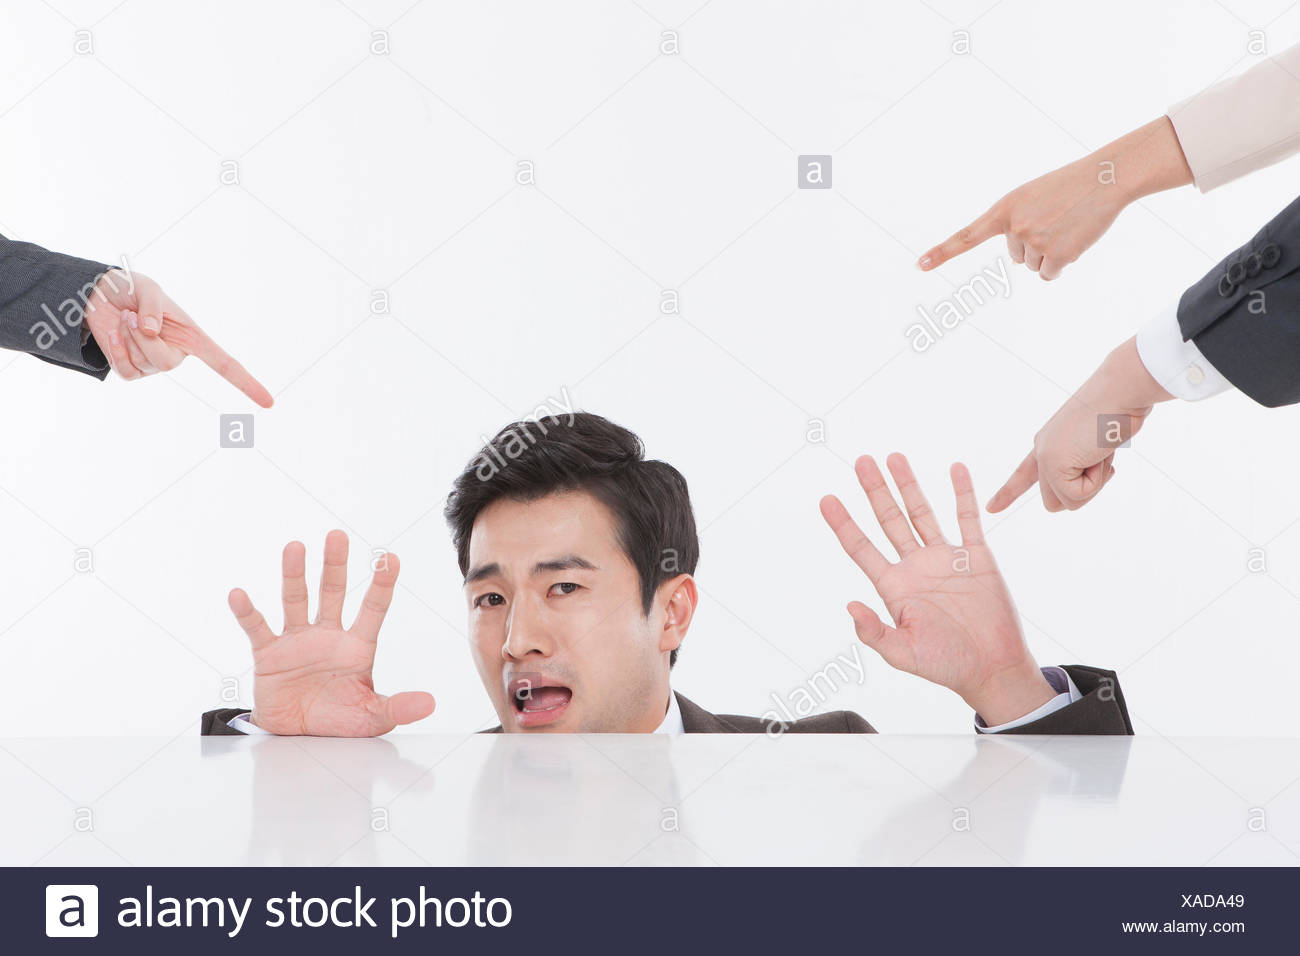 Portrait of stressful businessman and fingers pointing to him - Stock Image